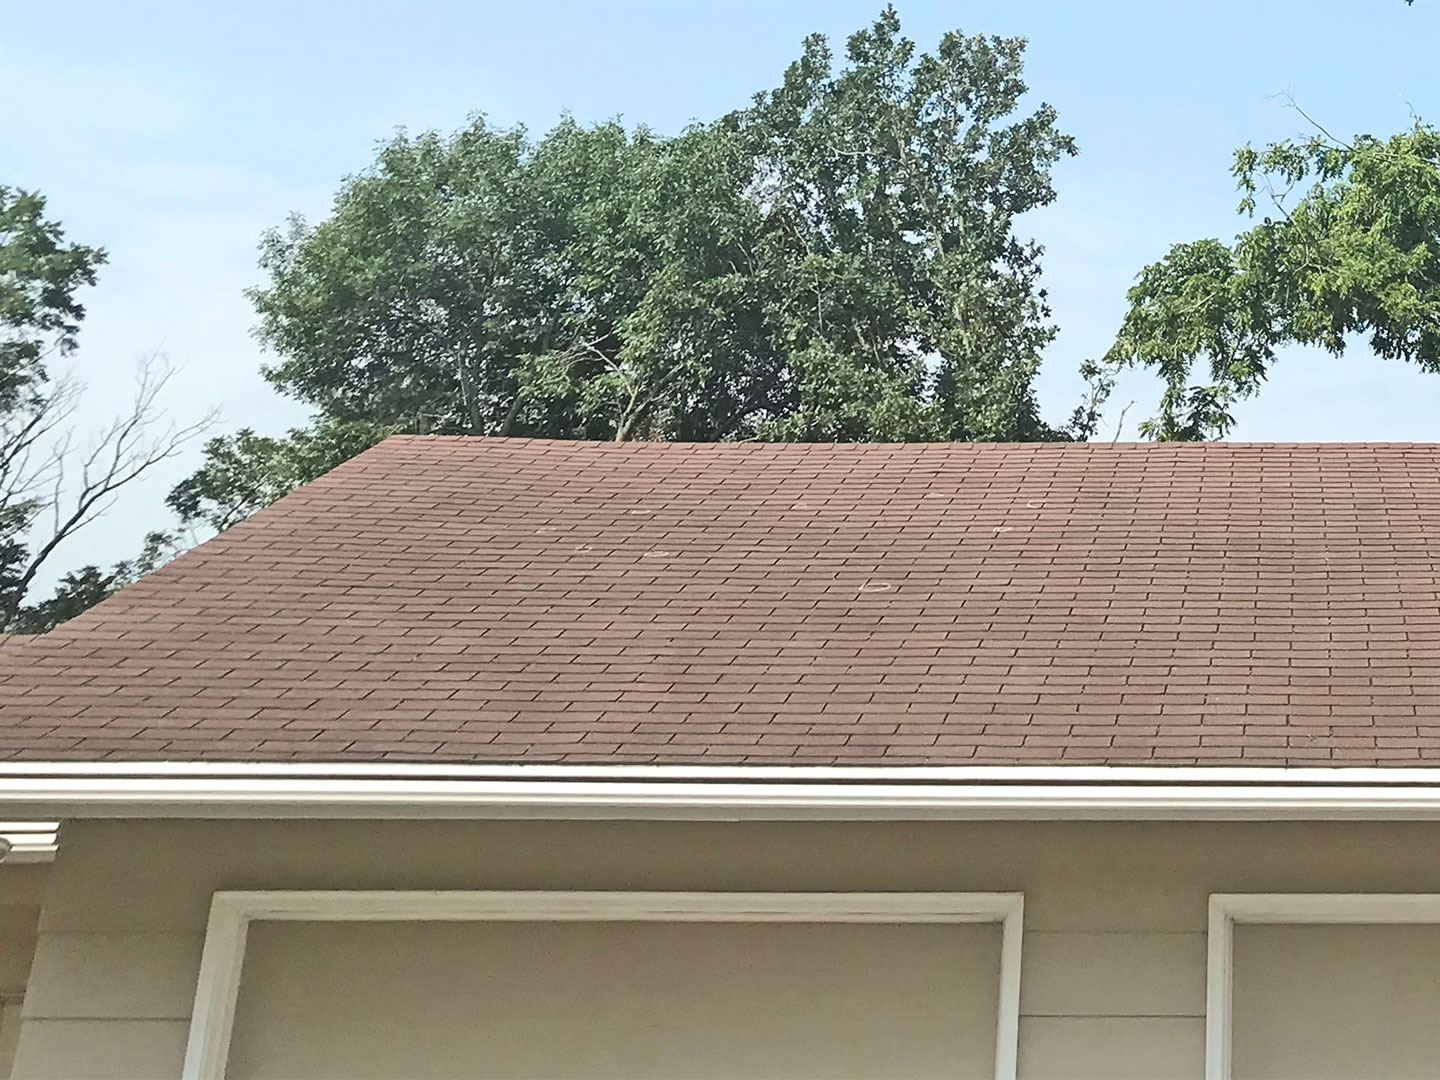 Roof Replacement in Nevada, Iowa due to hail damage.